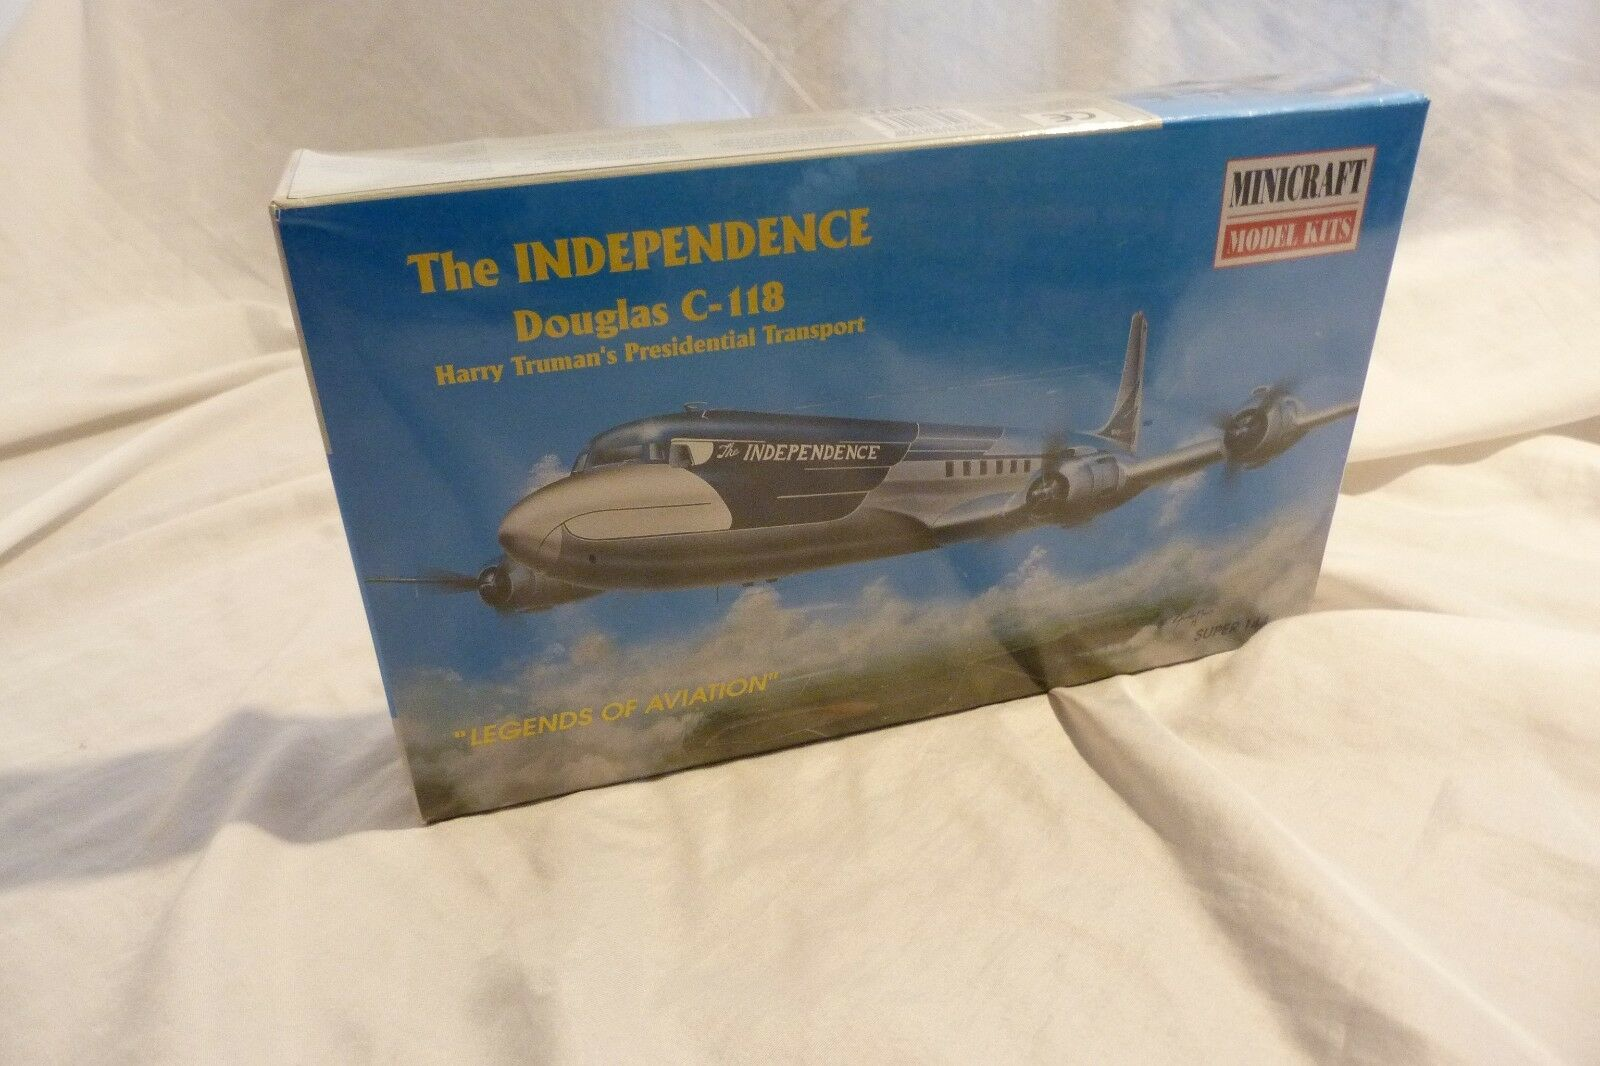 MINICRAFT 14447 Truman′s The Independence Douglas C-118 1 144 factory sealed